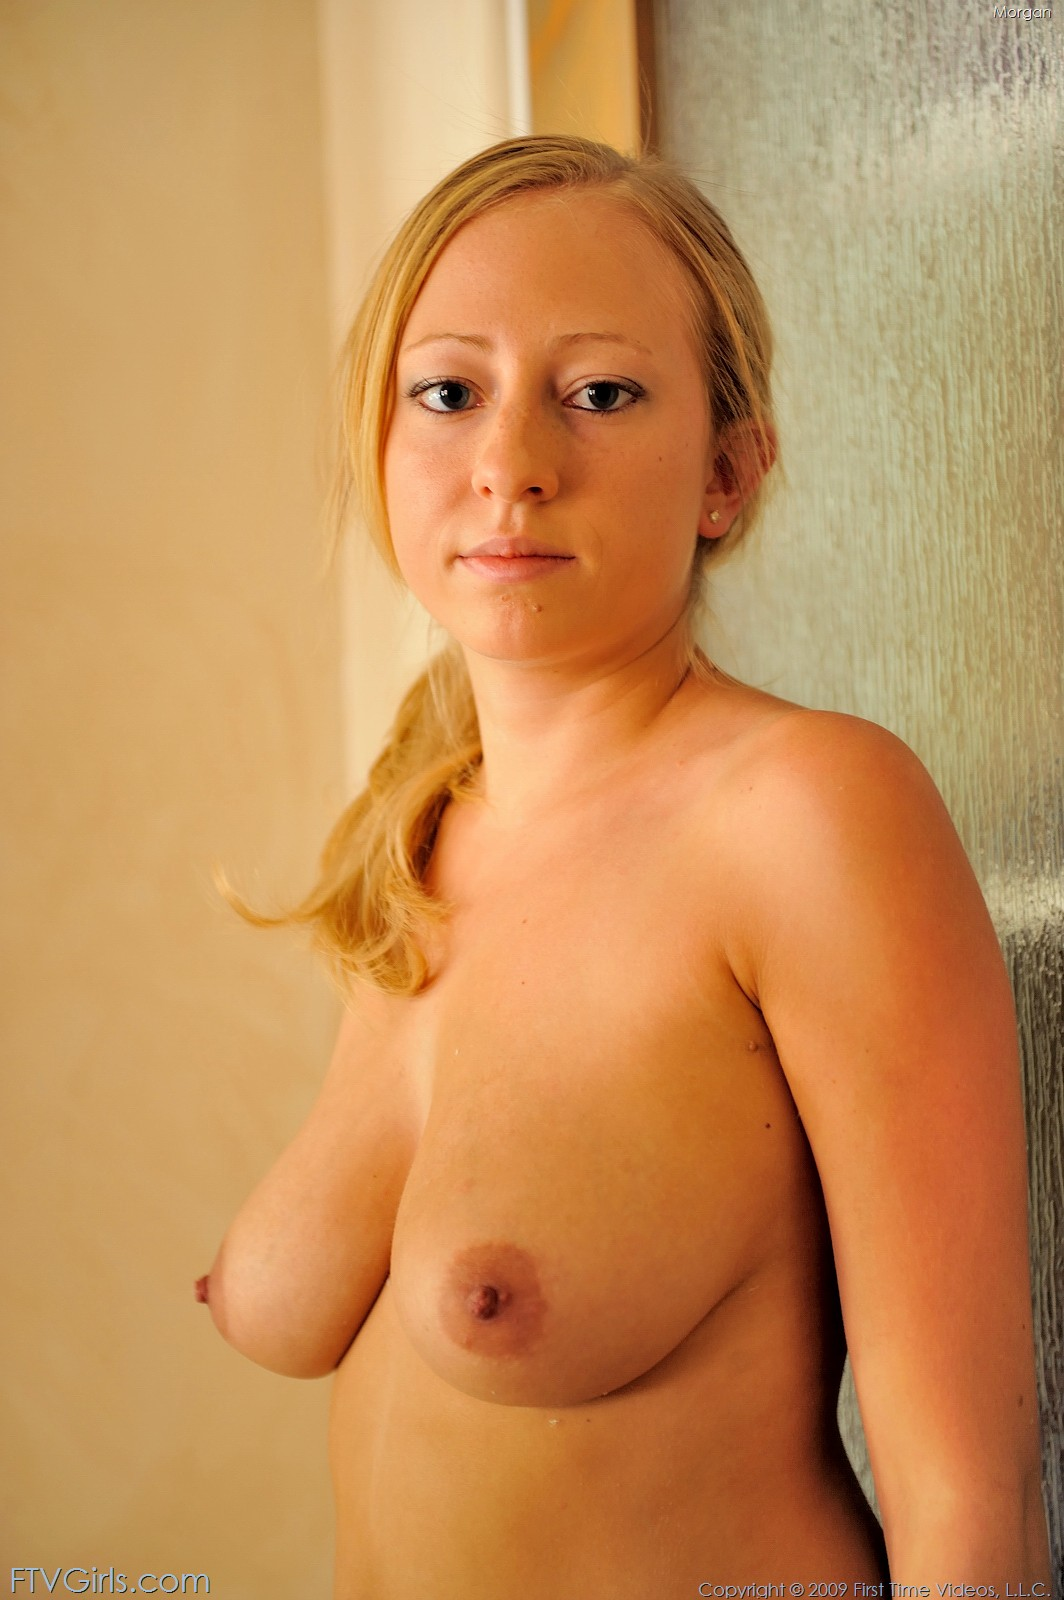 hot nude girls in pain